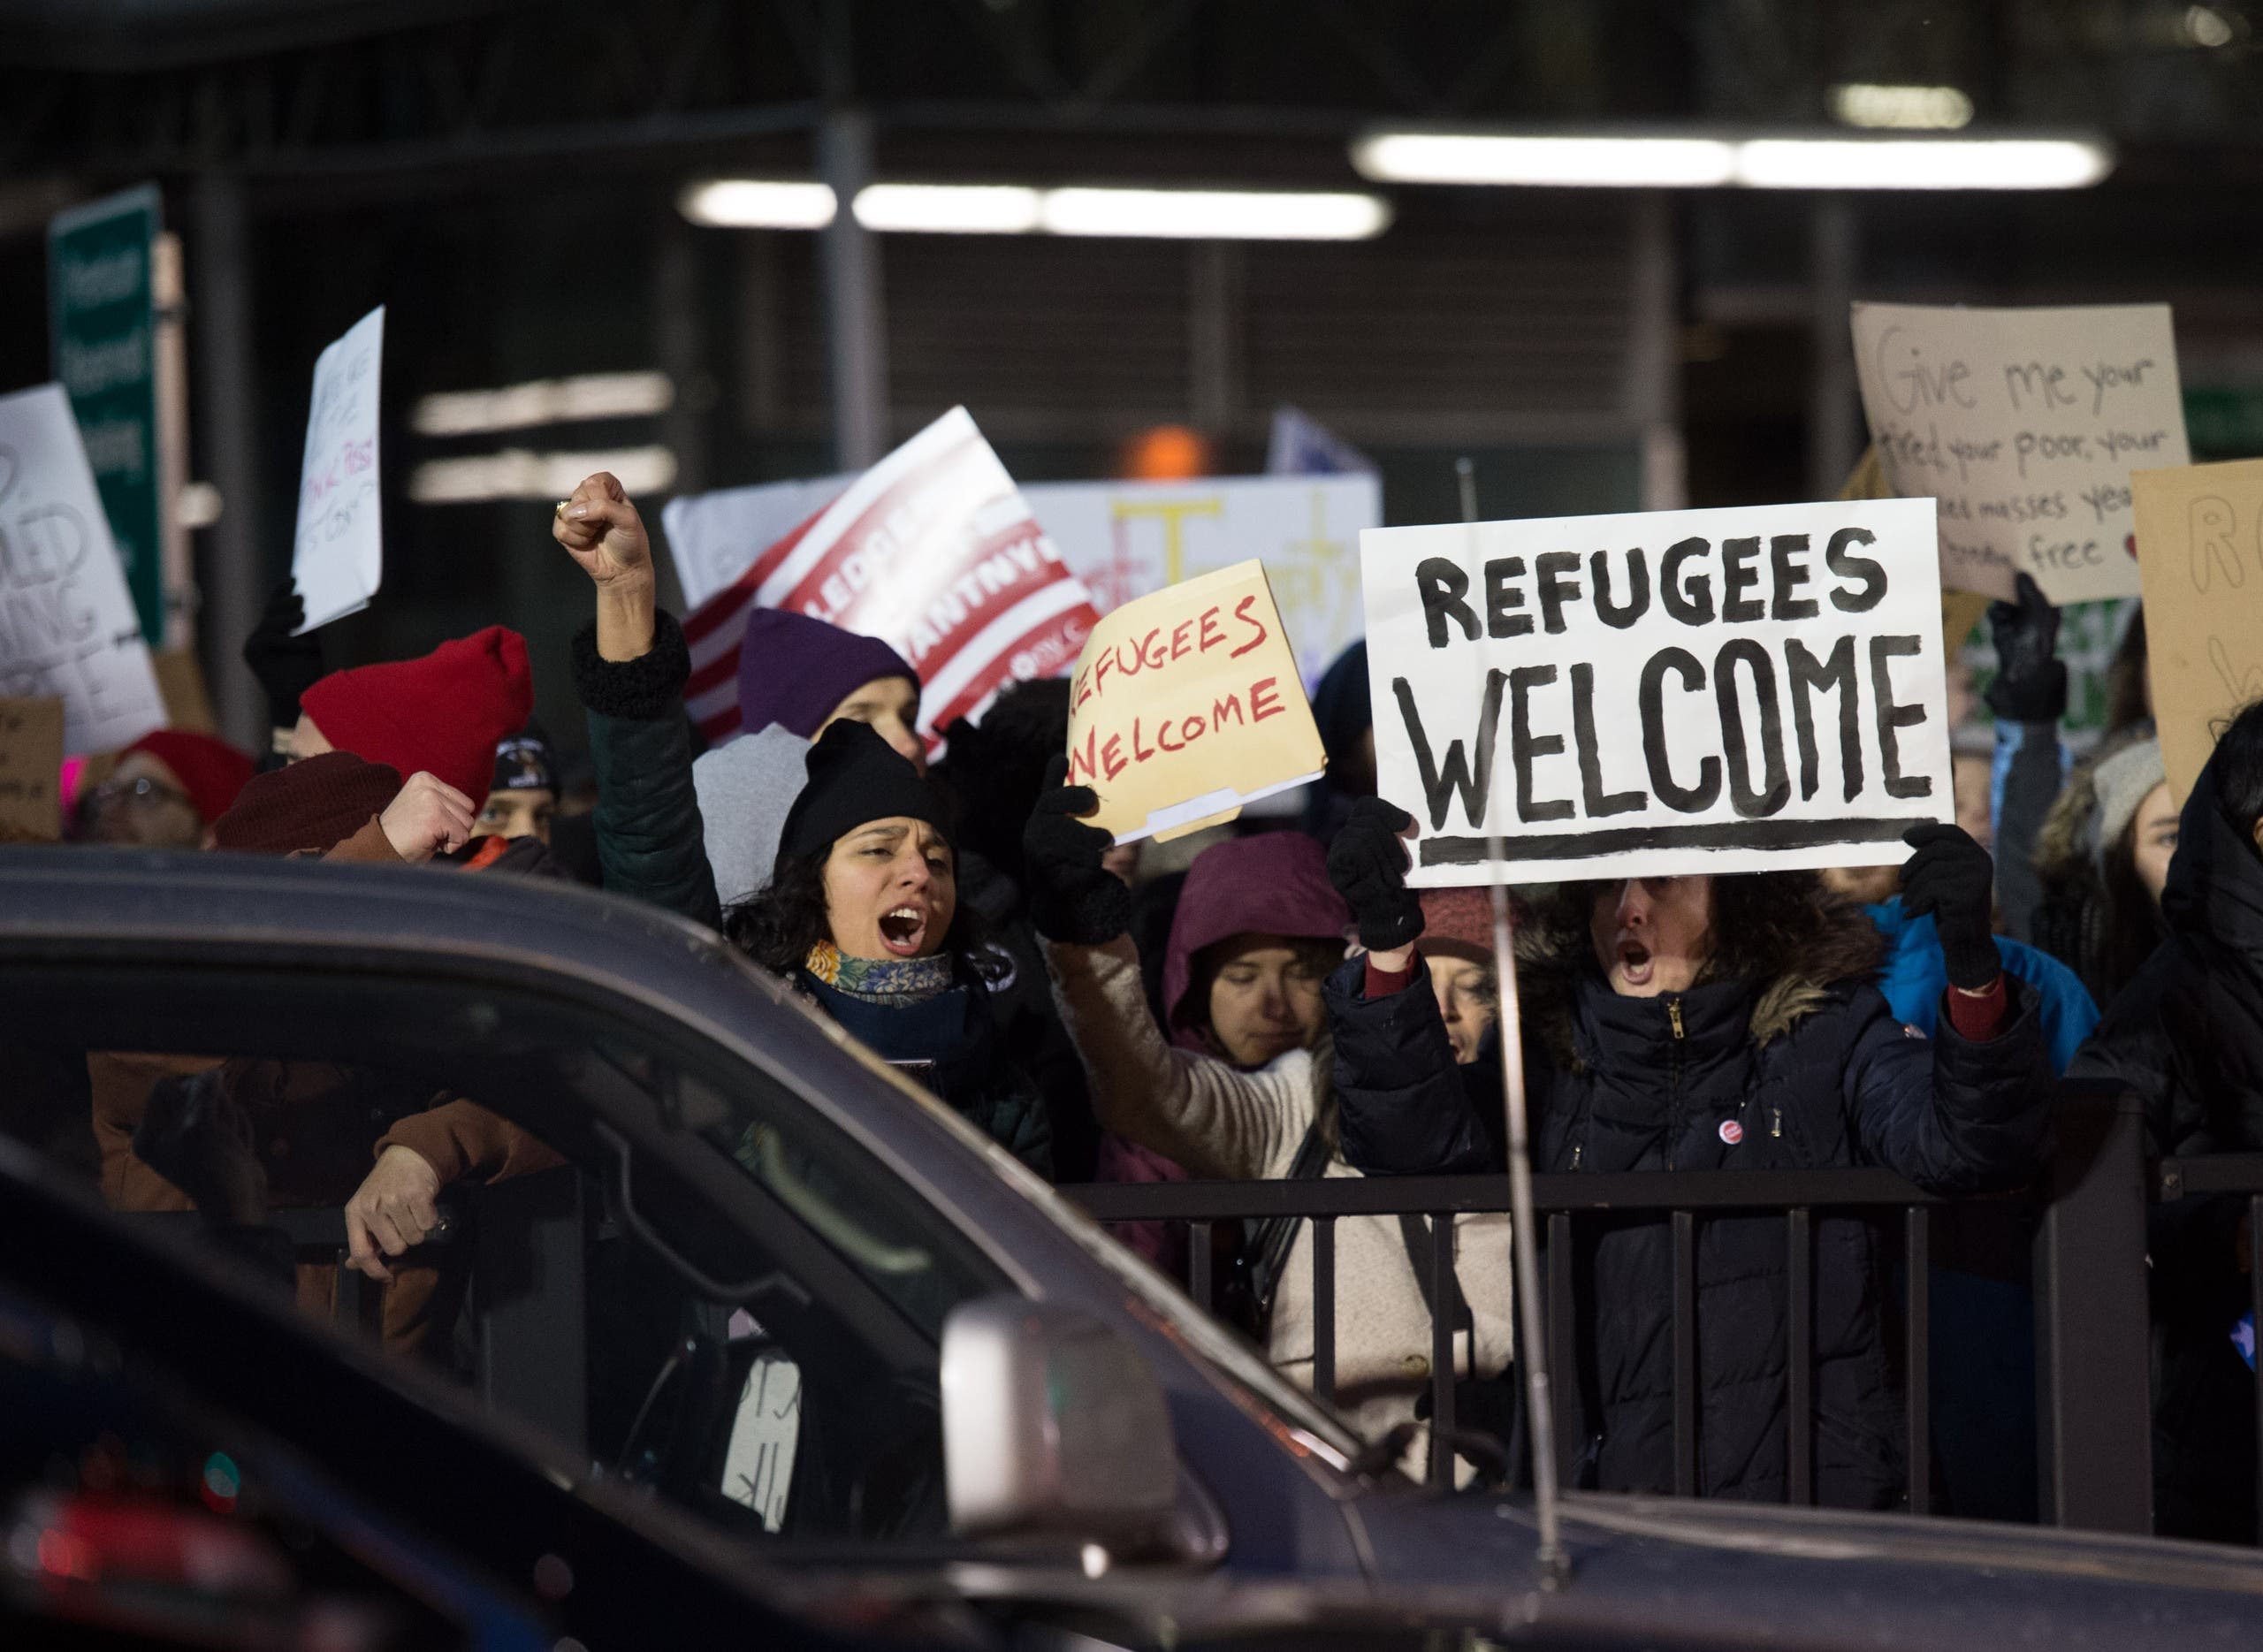 Protesters gather at JFK International Airport against Donald Trump's executive order on January 28, 2017 in New York.